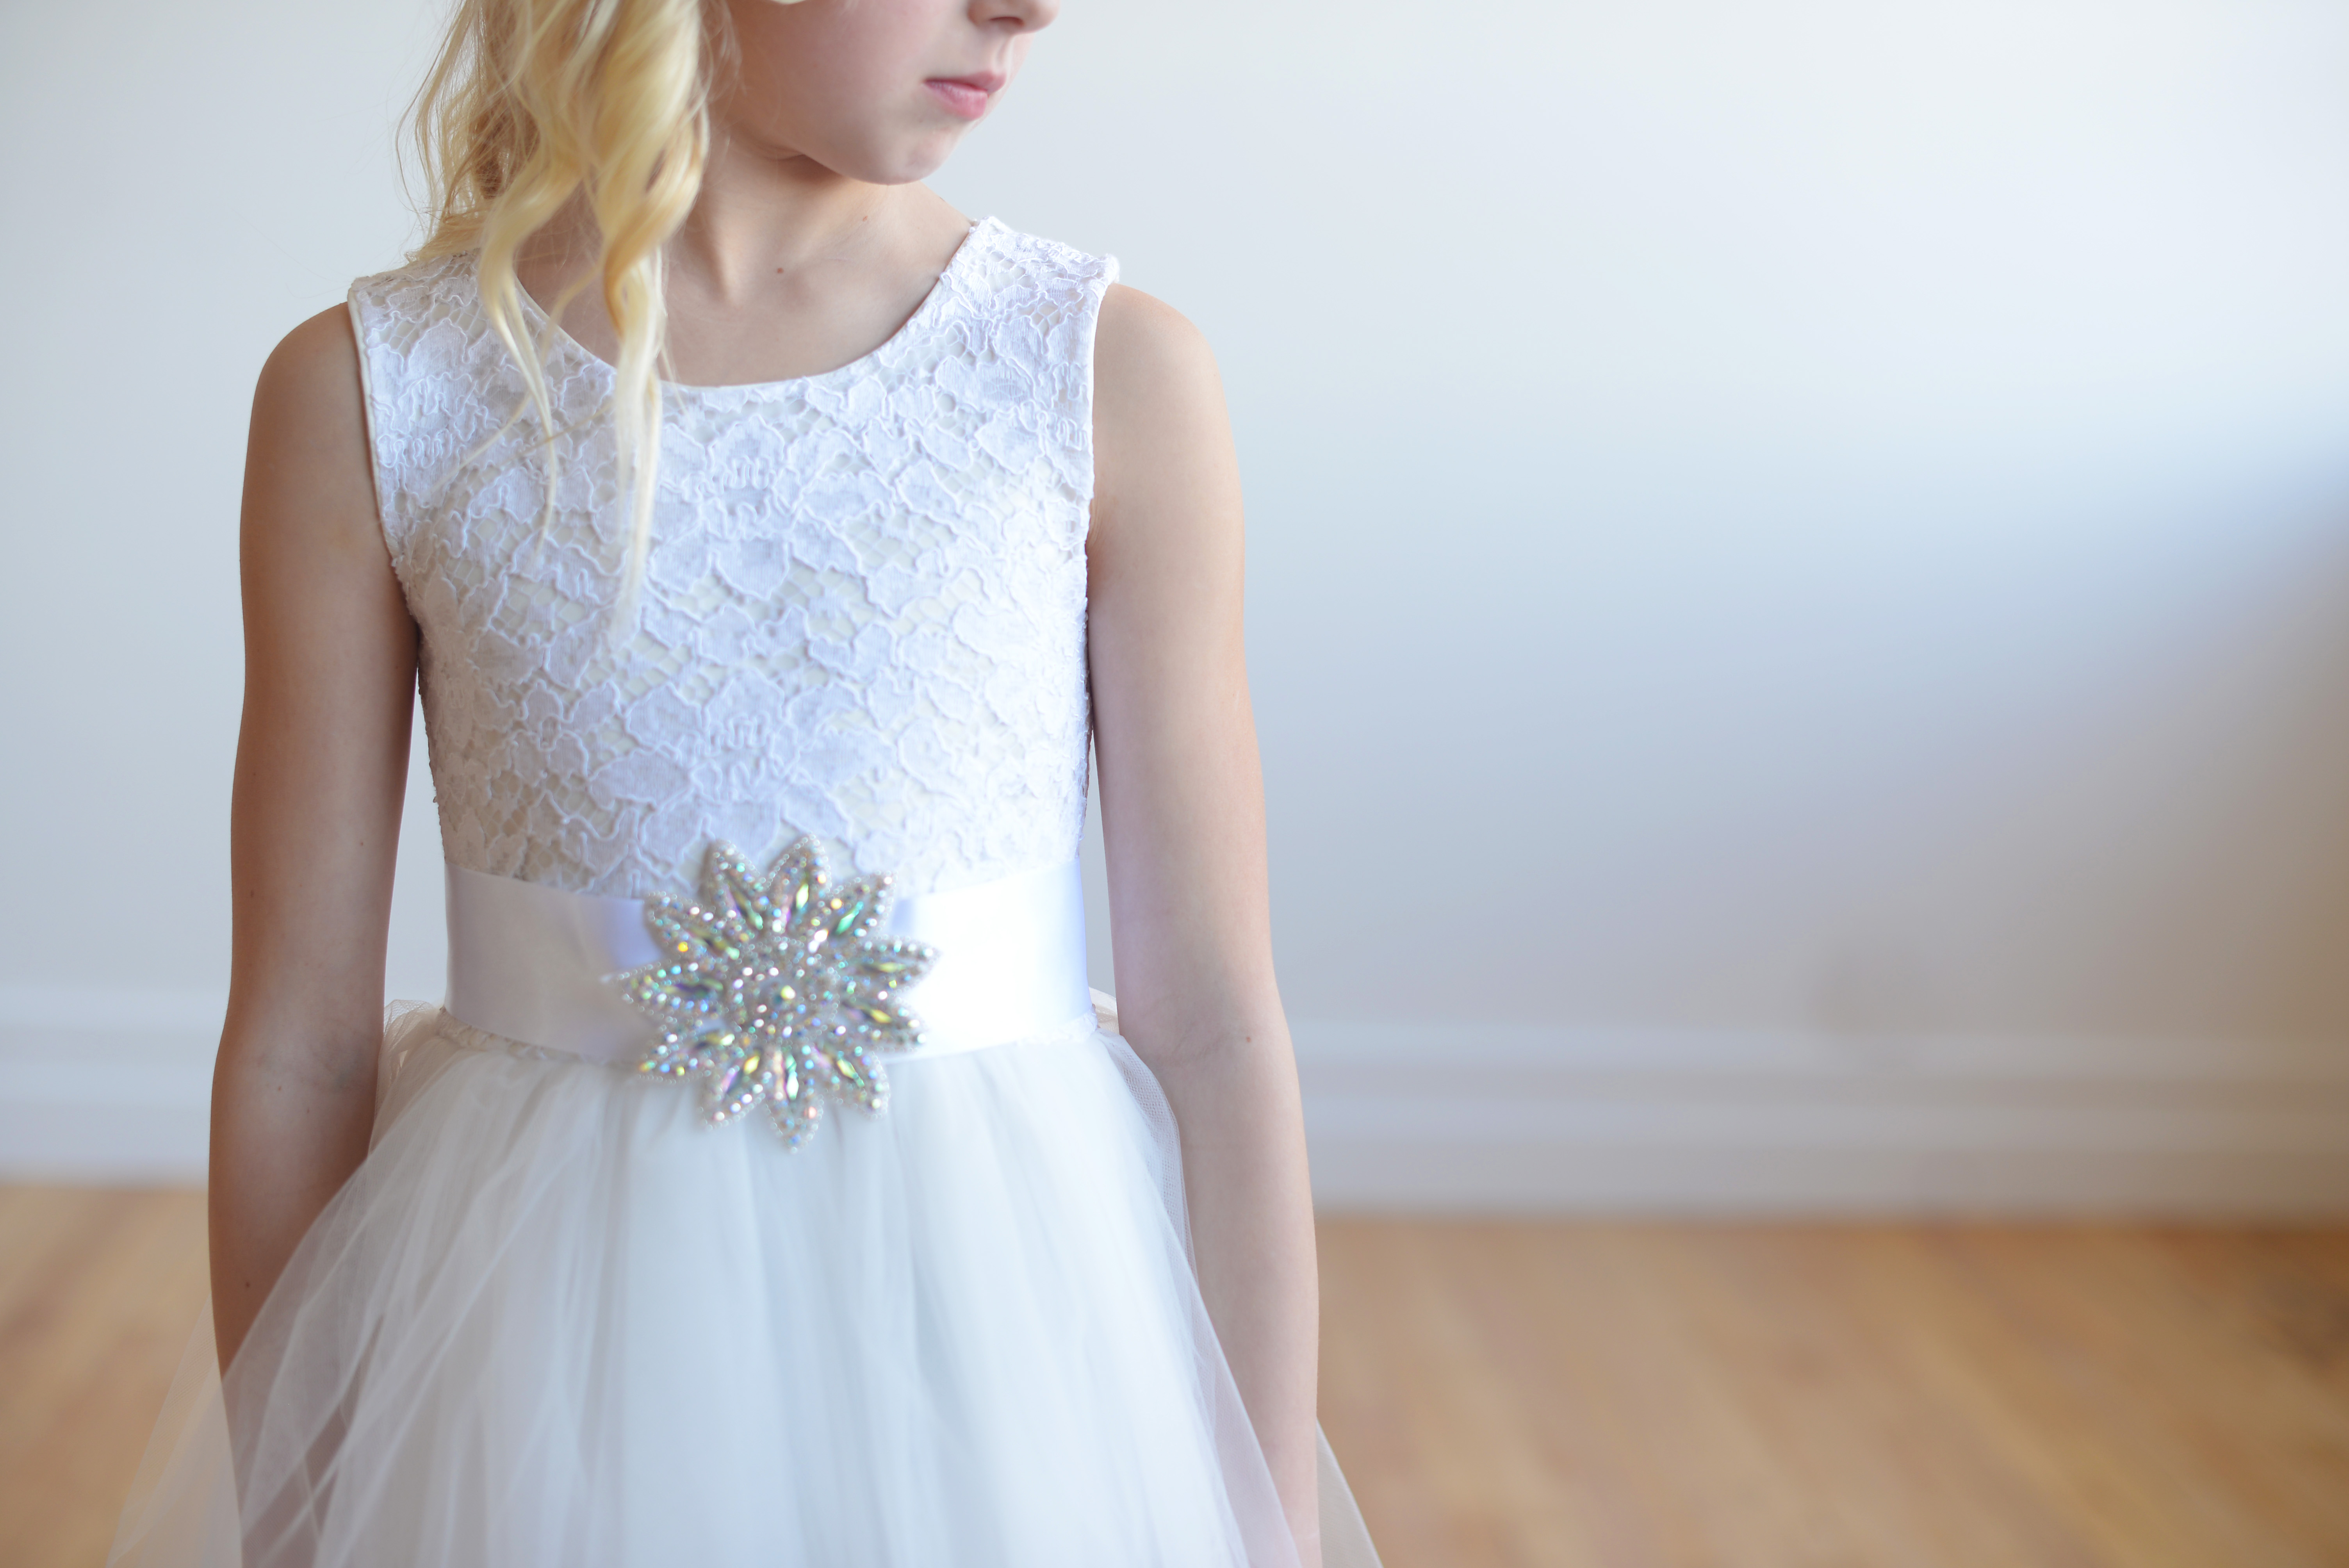 A White Lace Flower Dress With Full Tulle Skirt And Diamante Embellishment On The Sahsh